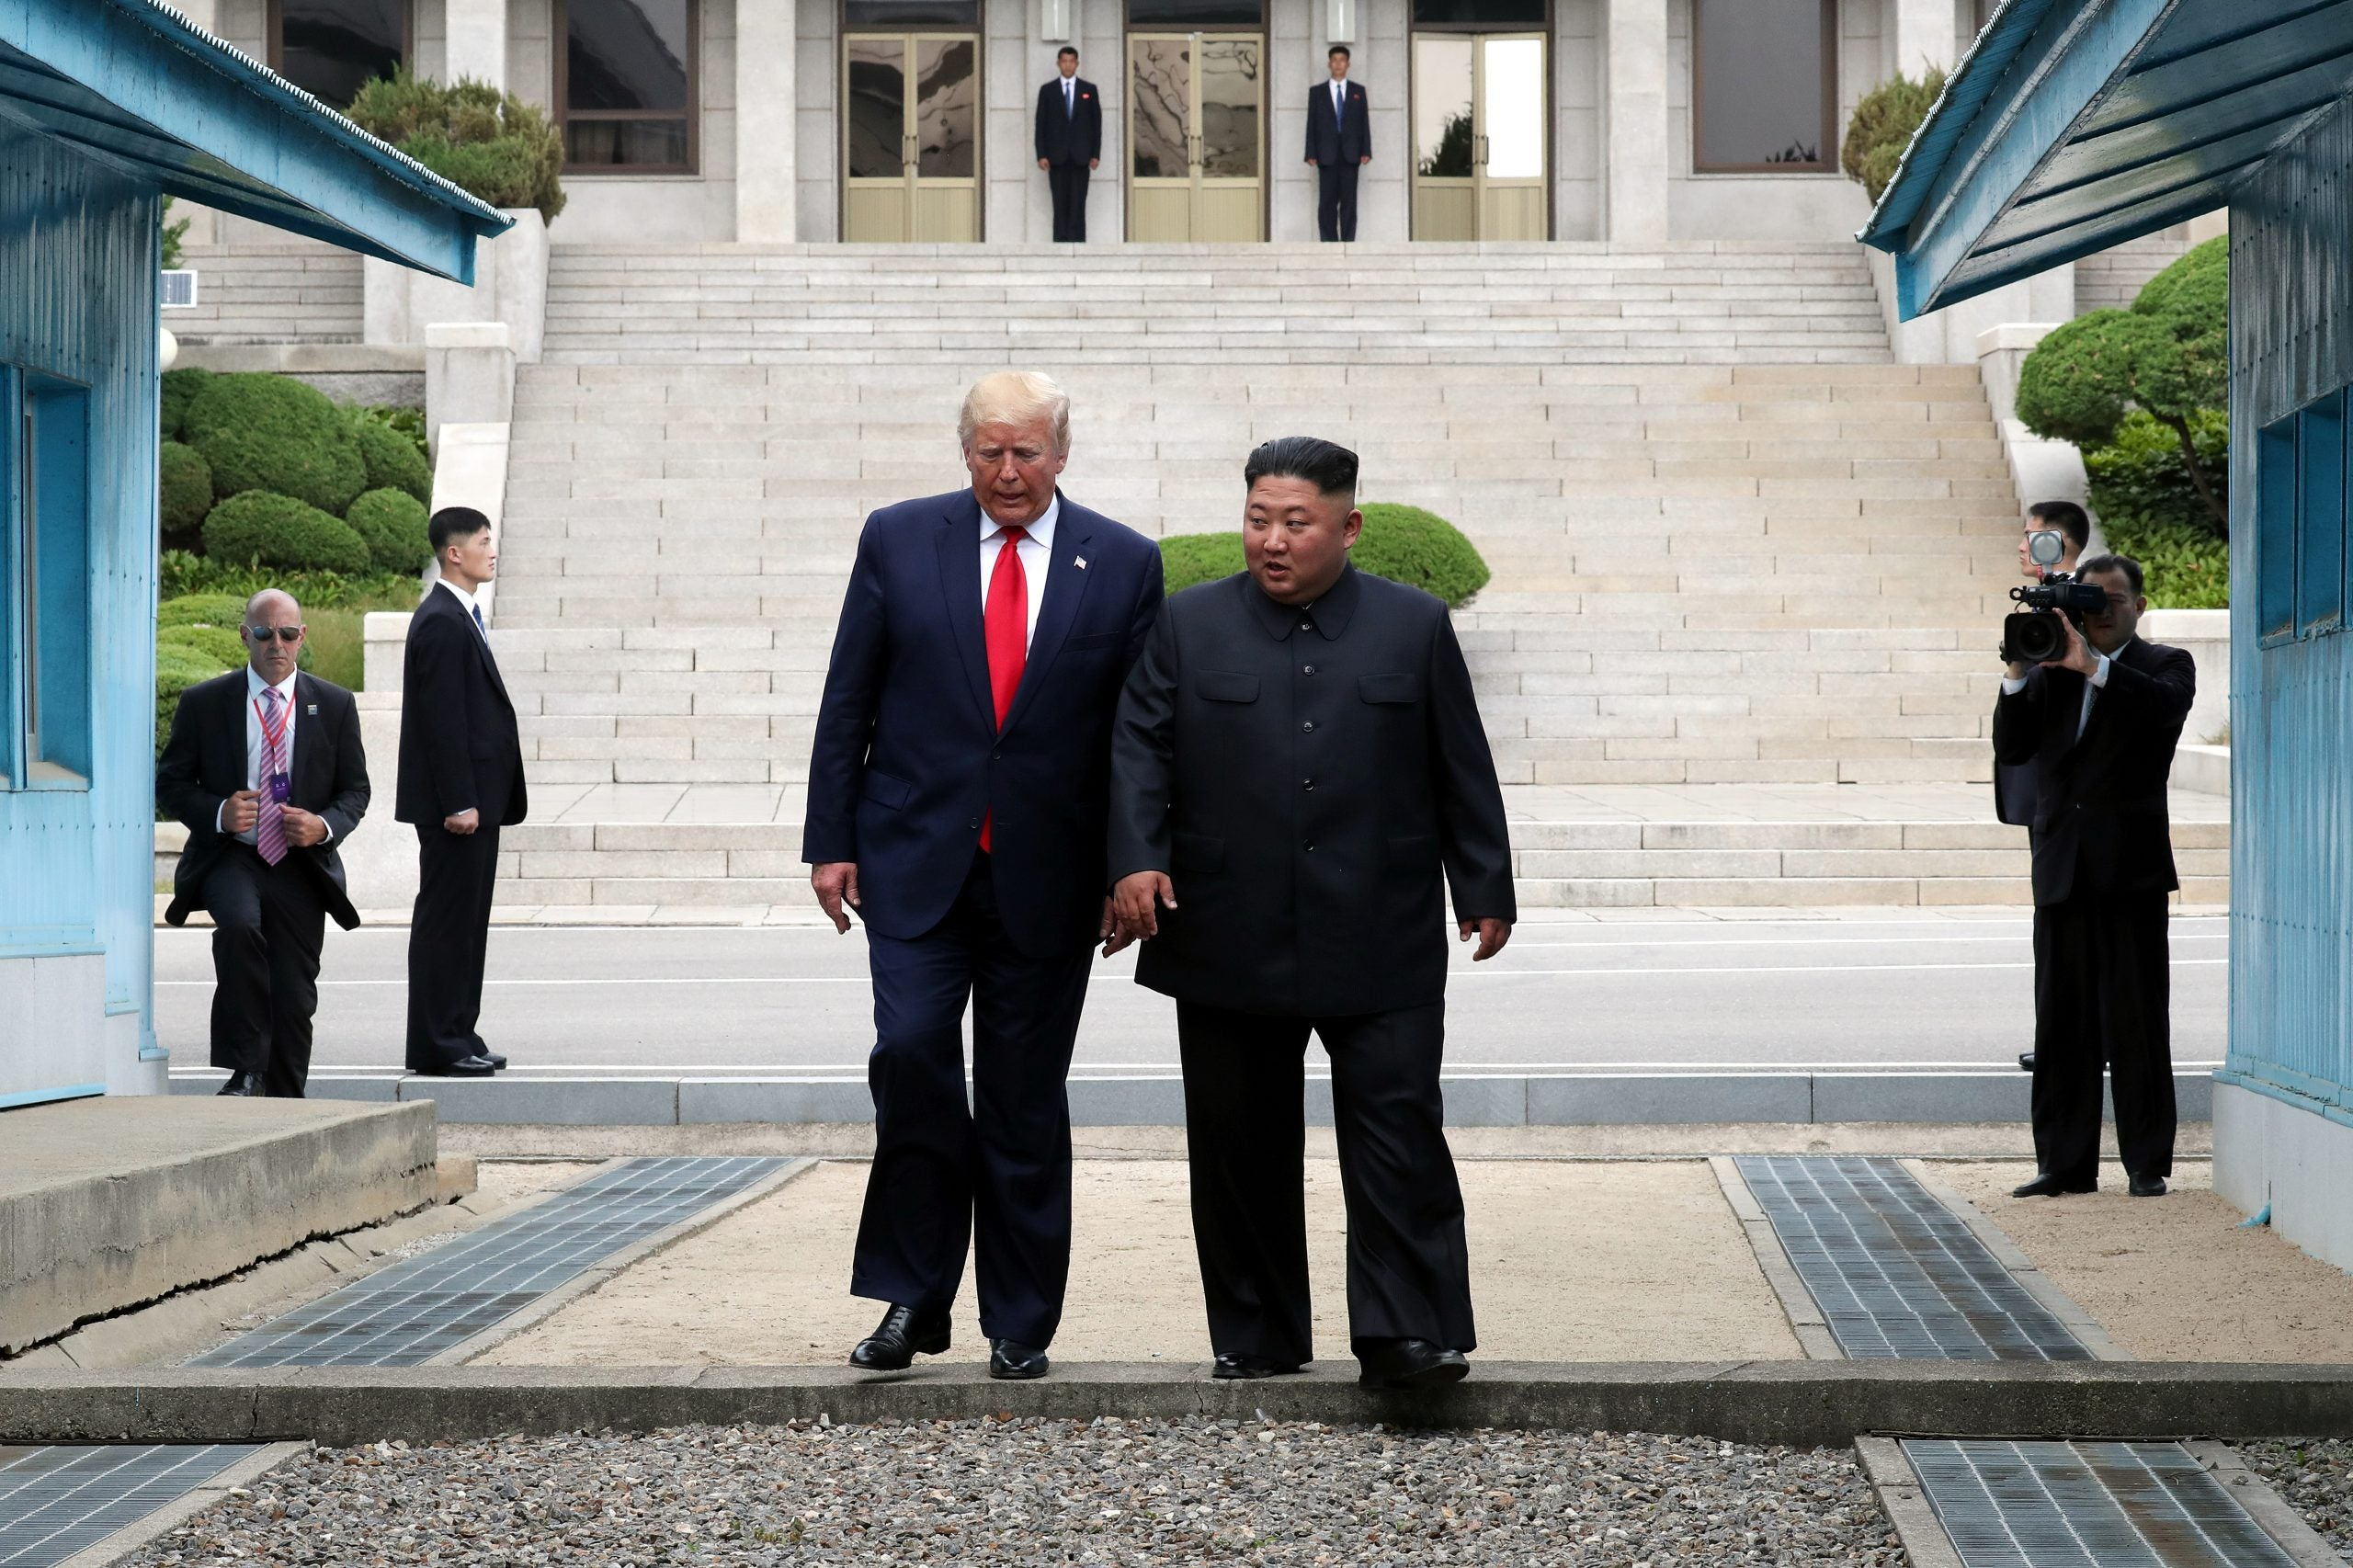 Lessons for Iran from Trump's wooing of Kim Jong-un, the North Korean dictator